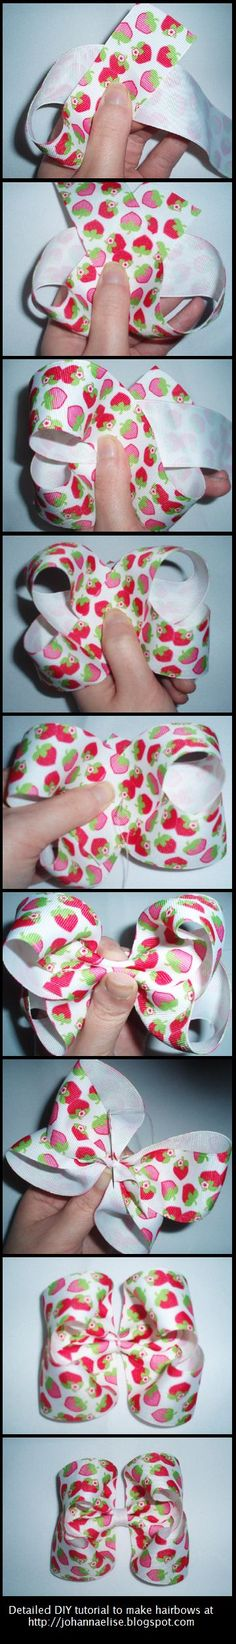 How to Make Boutique Hair Bows